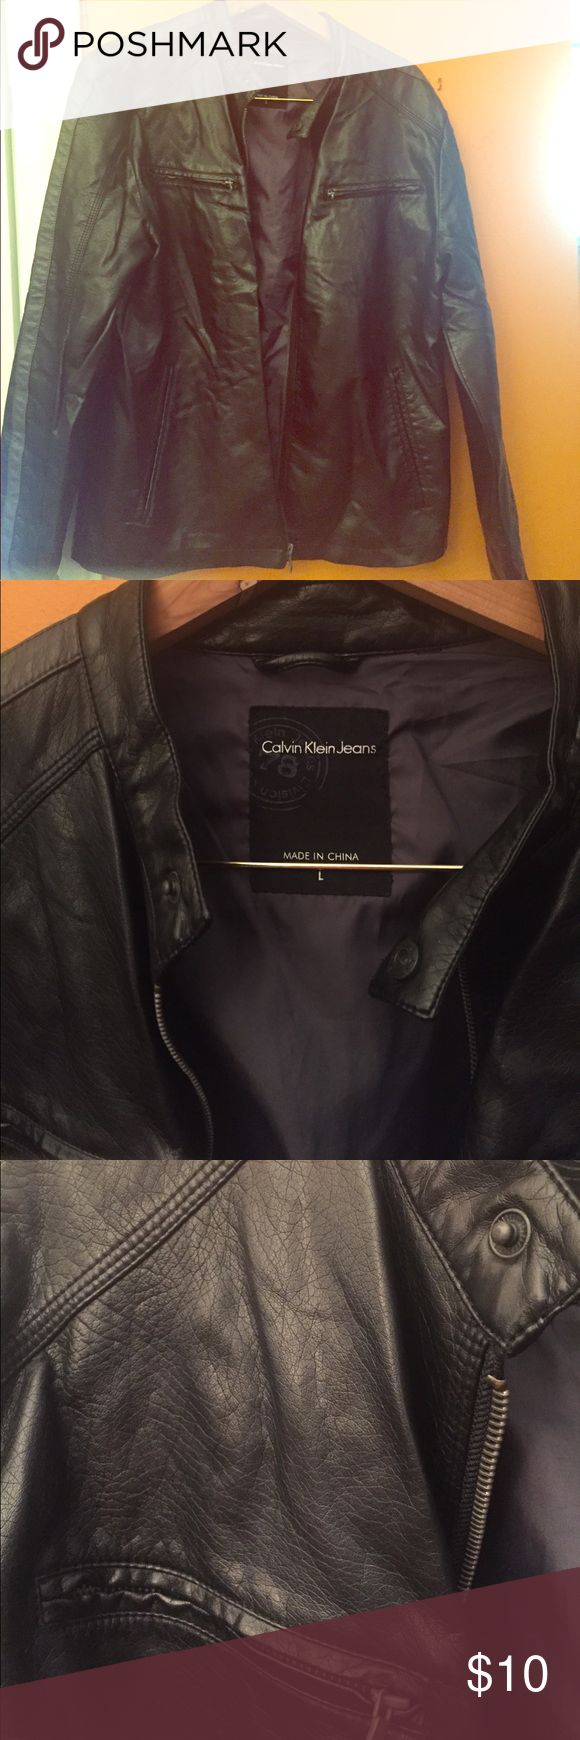 Smooth faux leather jacket for men Worn a few times in great condition Calvin Klein Jeans Jackets & Coats